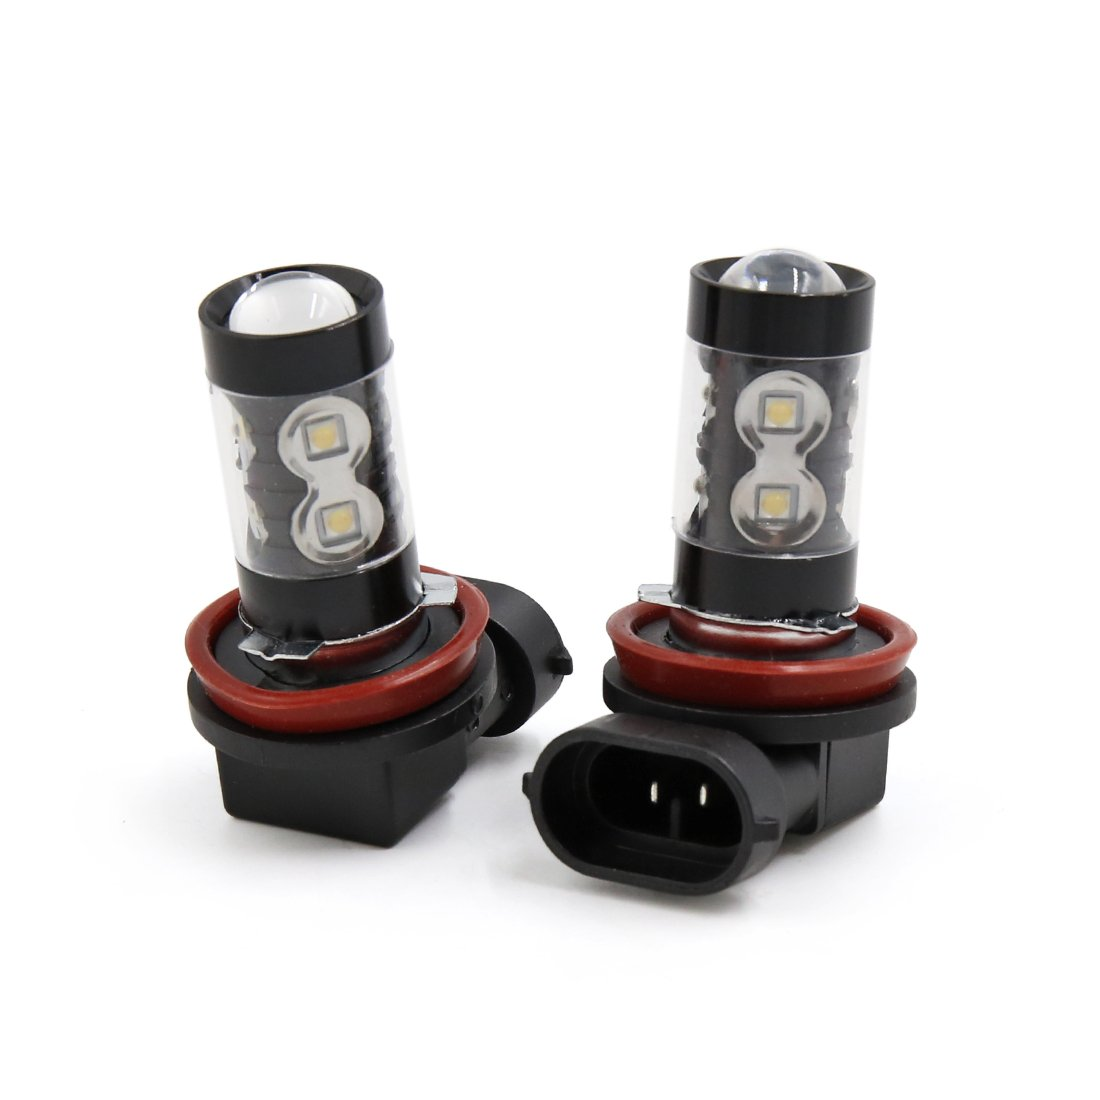 uxcell 2Pcs 50W H8 Black Shell White 2828 SMD 10 LEDs Lens Fog Headlight Bulb for Car